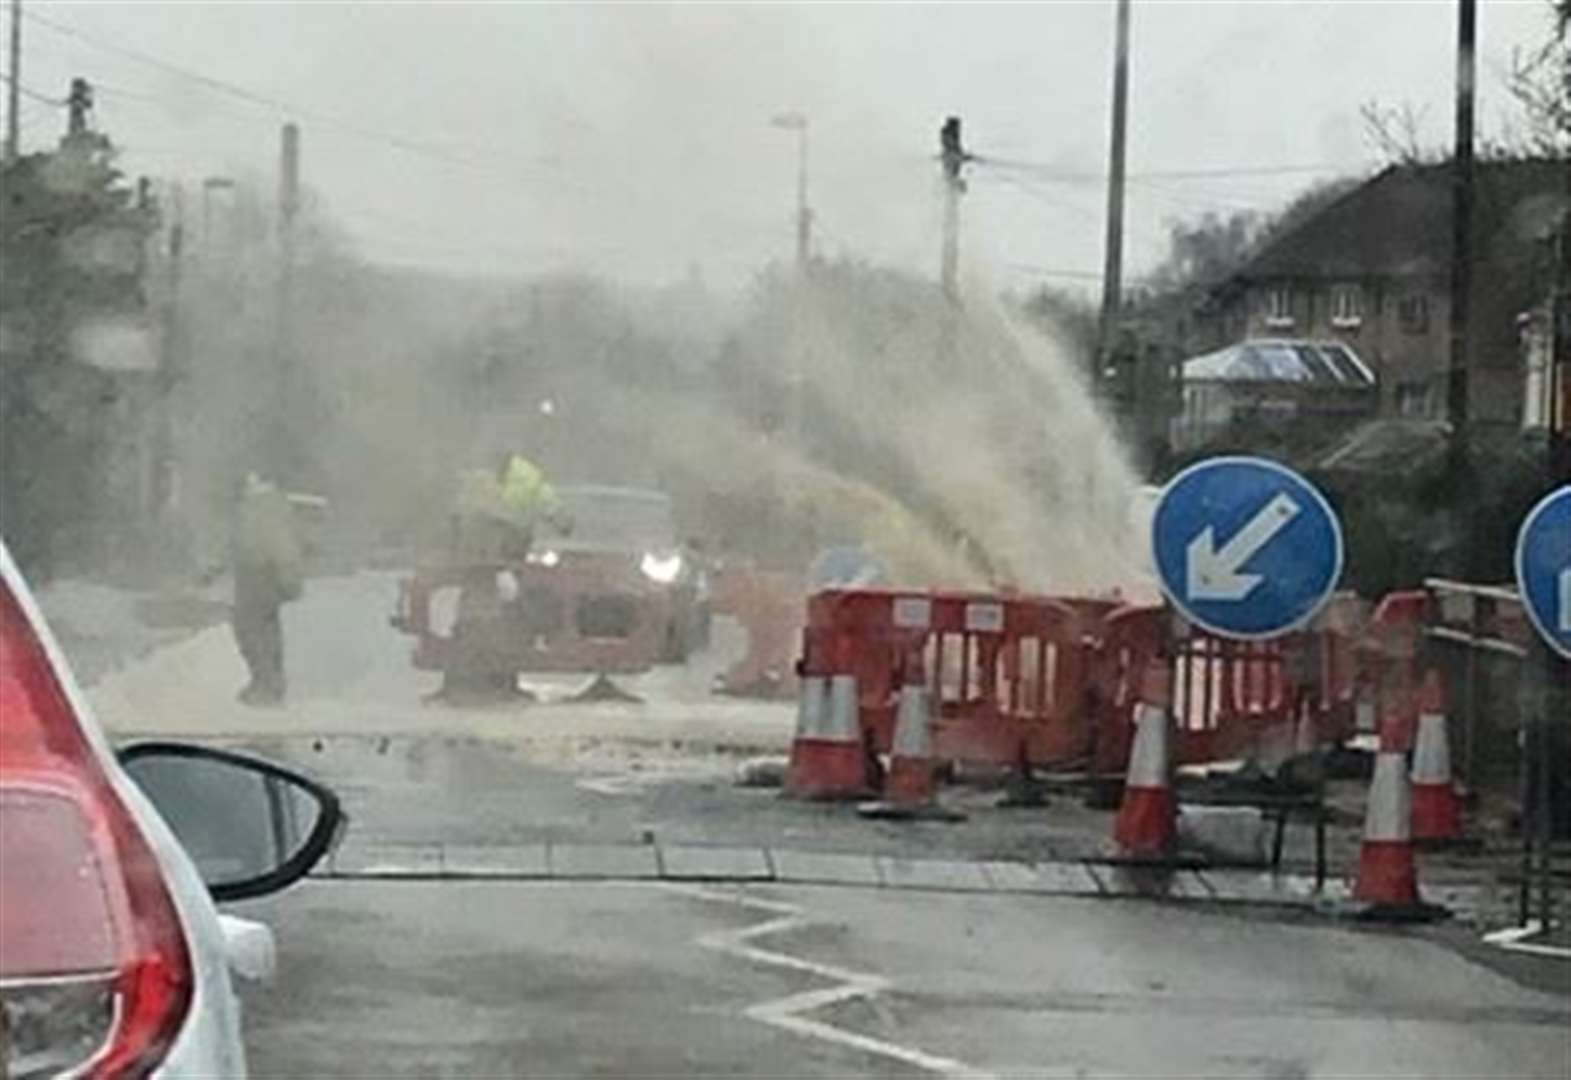 Road floods after pipe bursts